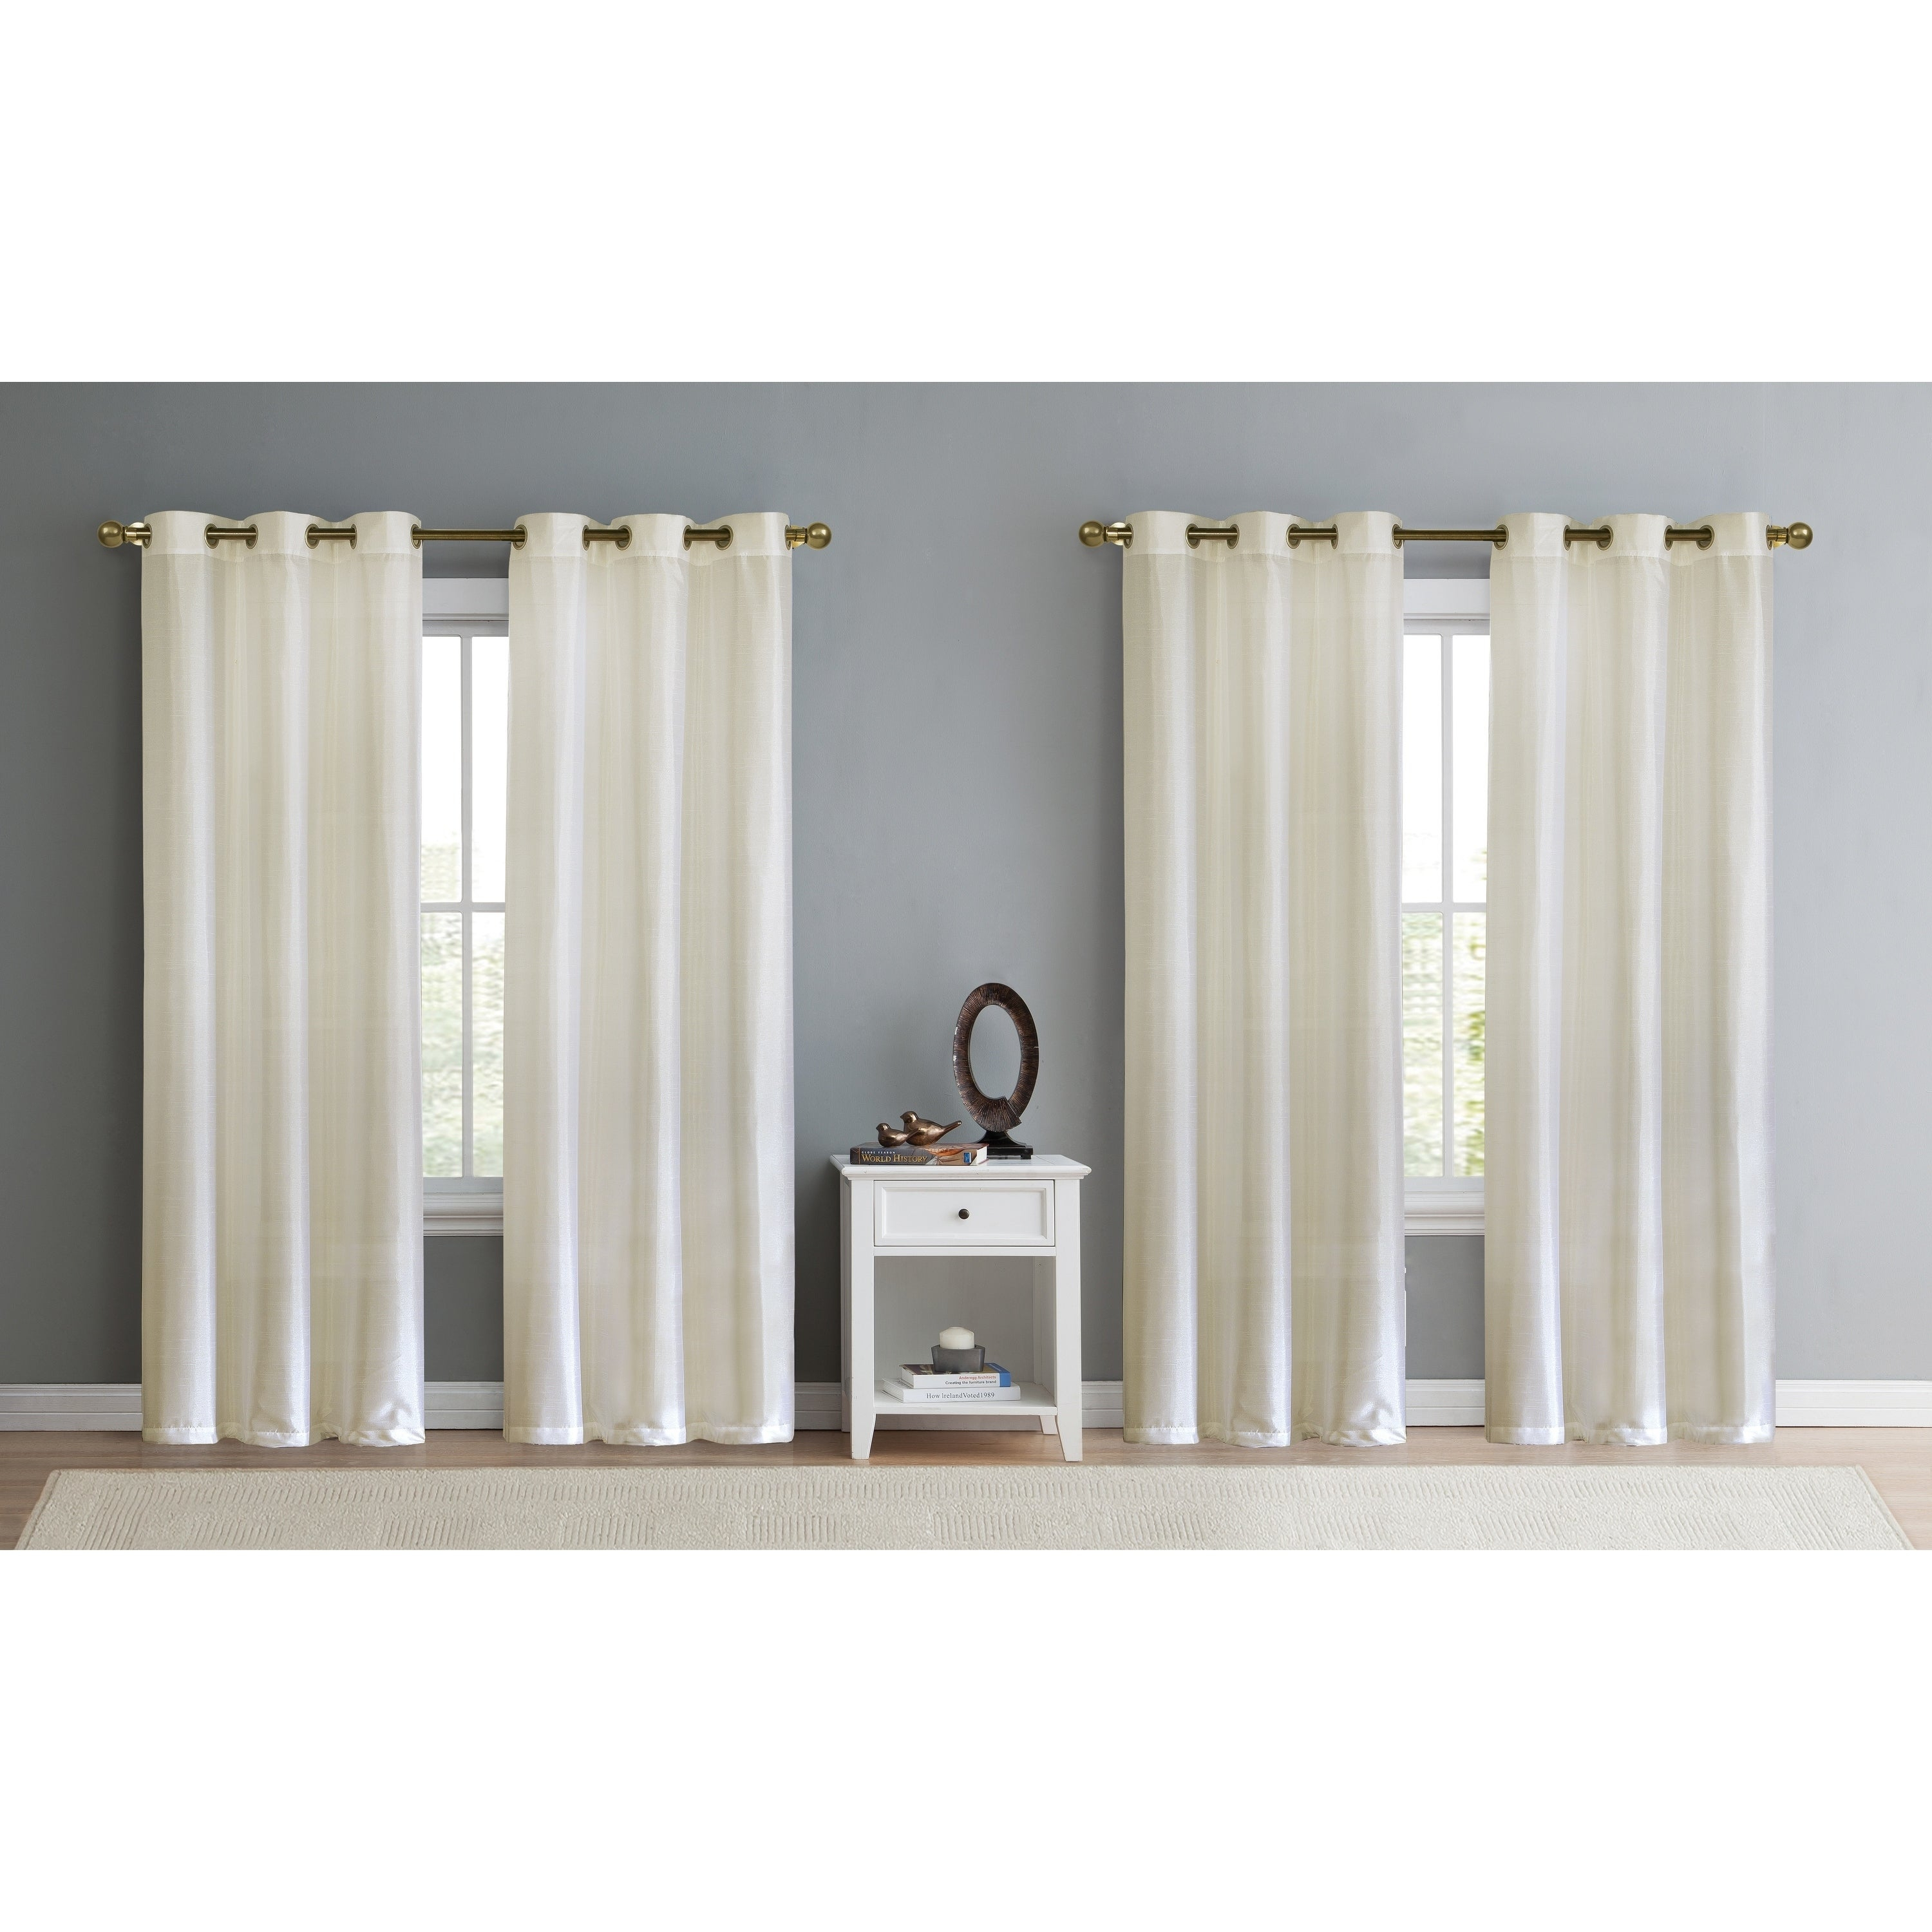 Details About Copper Grove Chausy Faux Silk Grommet Panel (set Of 4) Throughout Copper Grove Fulgence Faux Silk Grommet Top Panel Curtains (View 16 of 20)